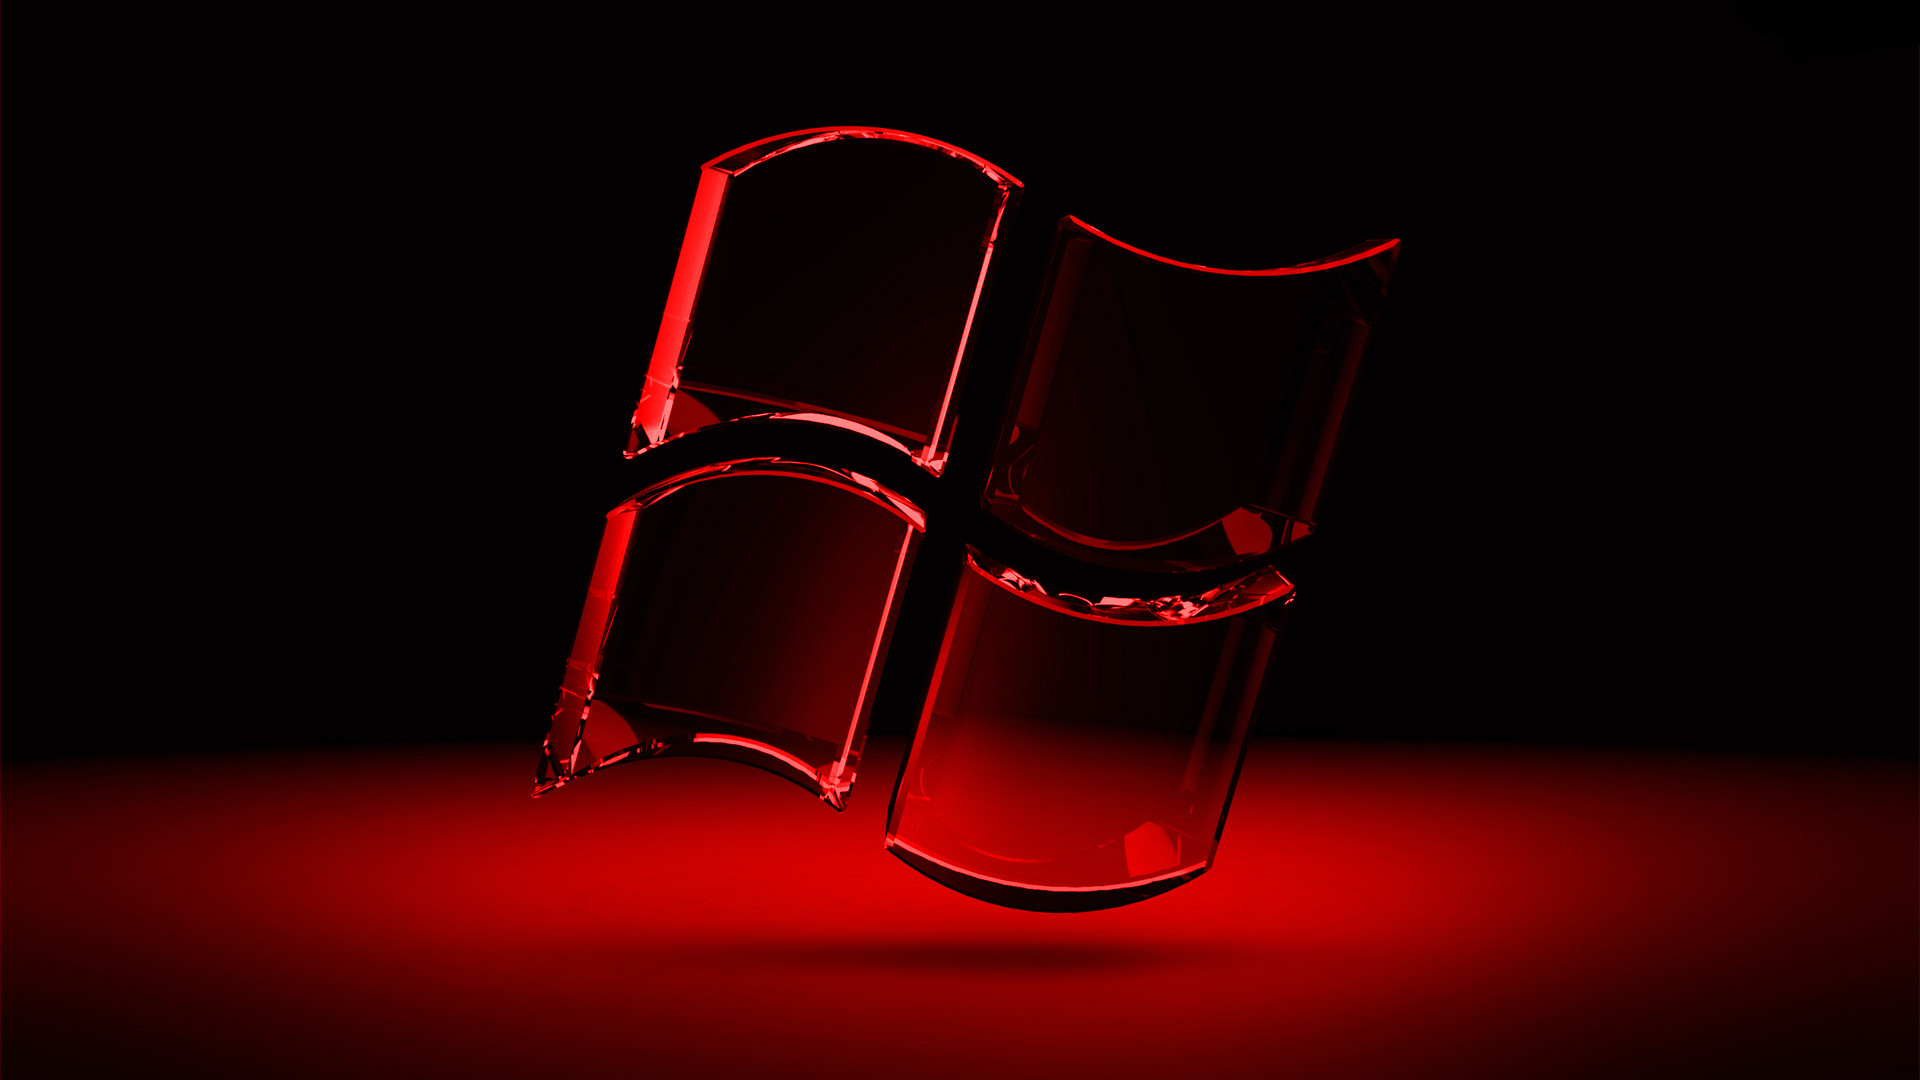 Windows 8 Black and Red HD wallpaper